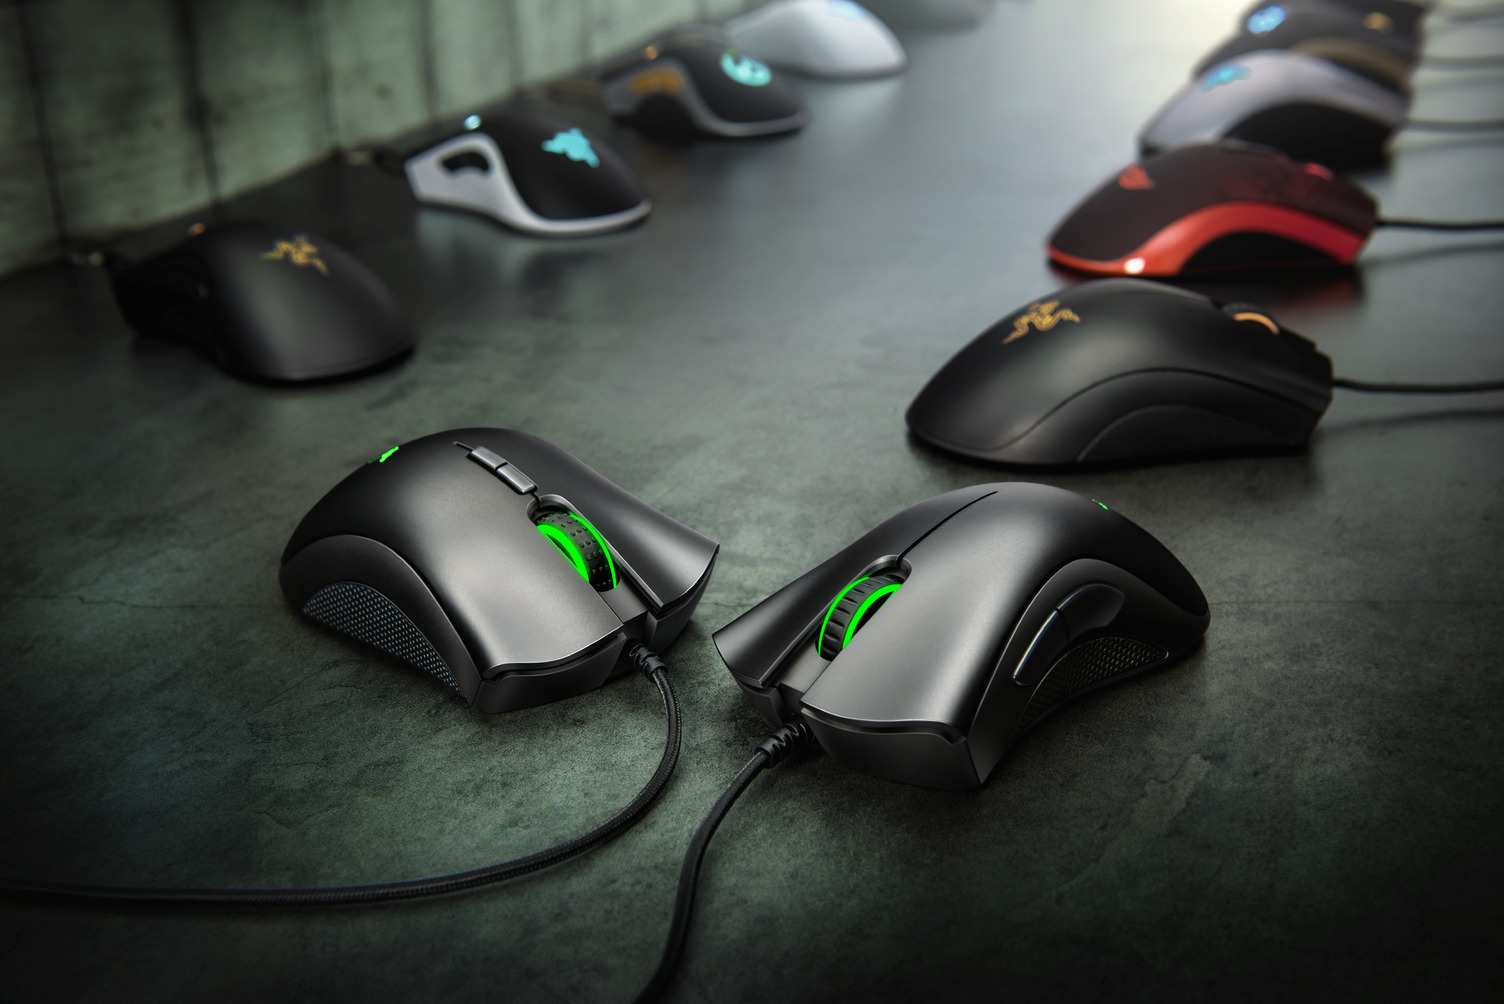 Deathadder Essential Deathadder Elite 2018 Gallery Concept Shoot Chroma Old Deathadder Mice 1